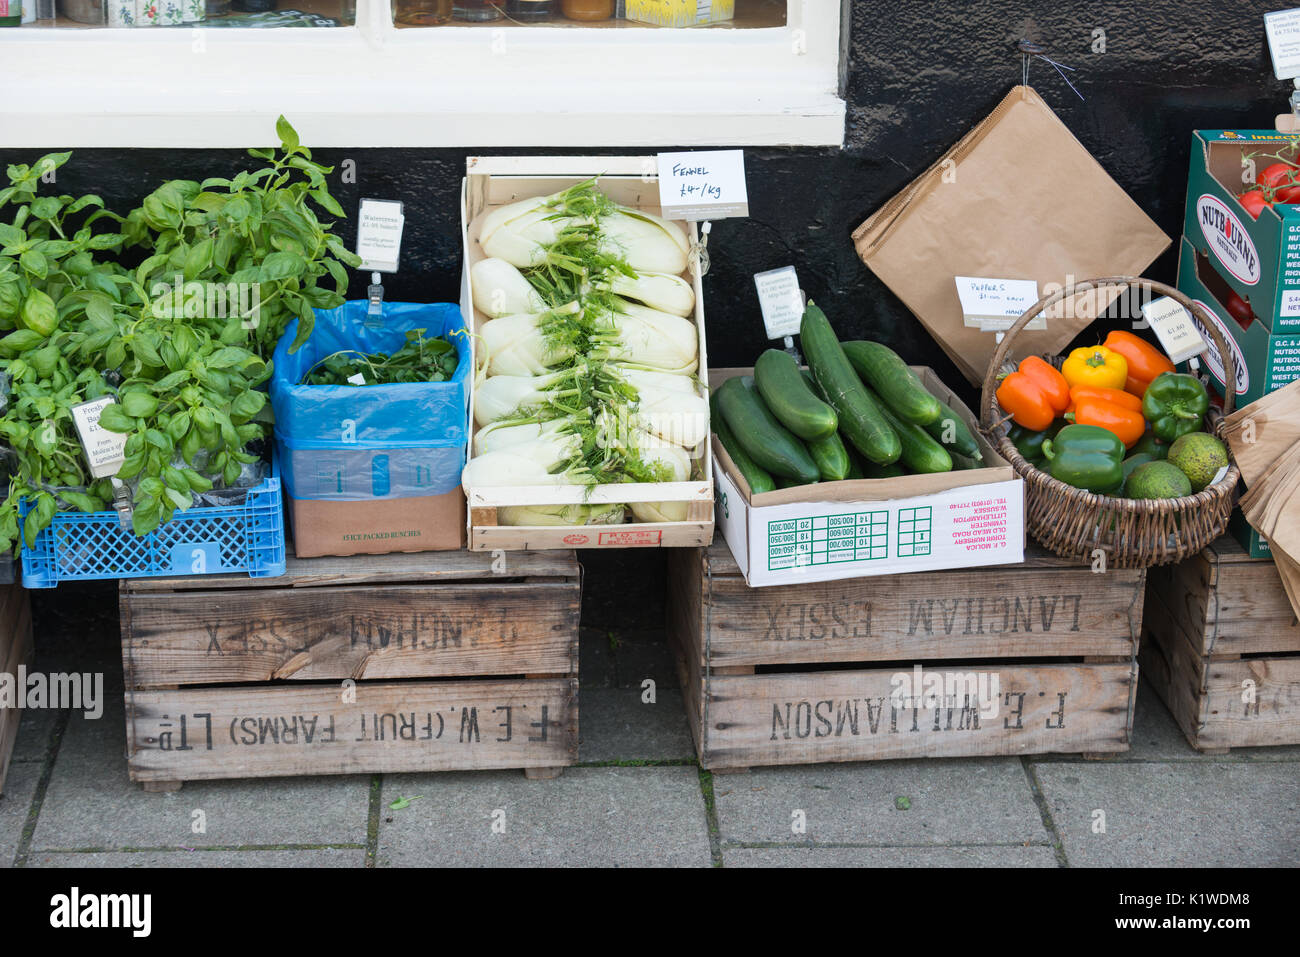 Boxes of fresh vegetables for sale outside a delicatessen in Arundel, West Sussex, England. - Stock Image